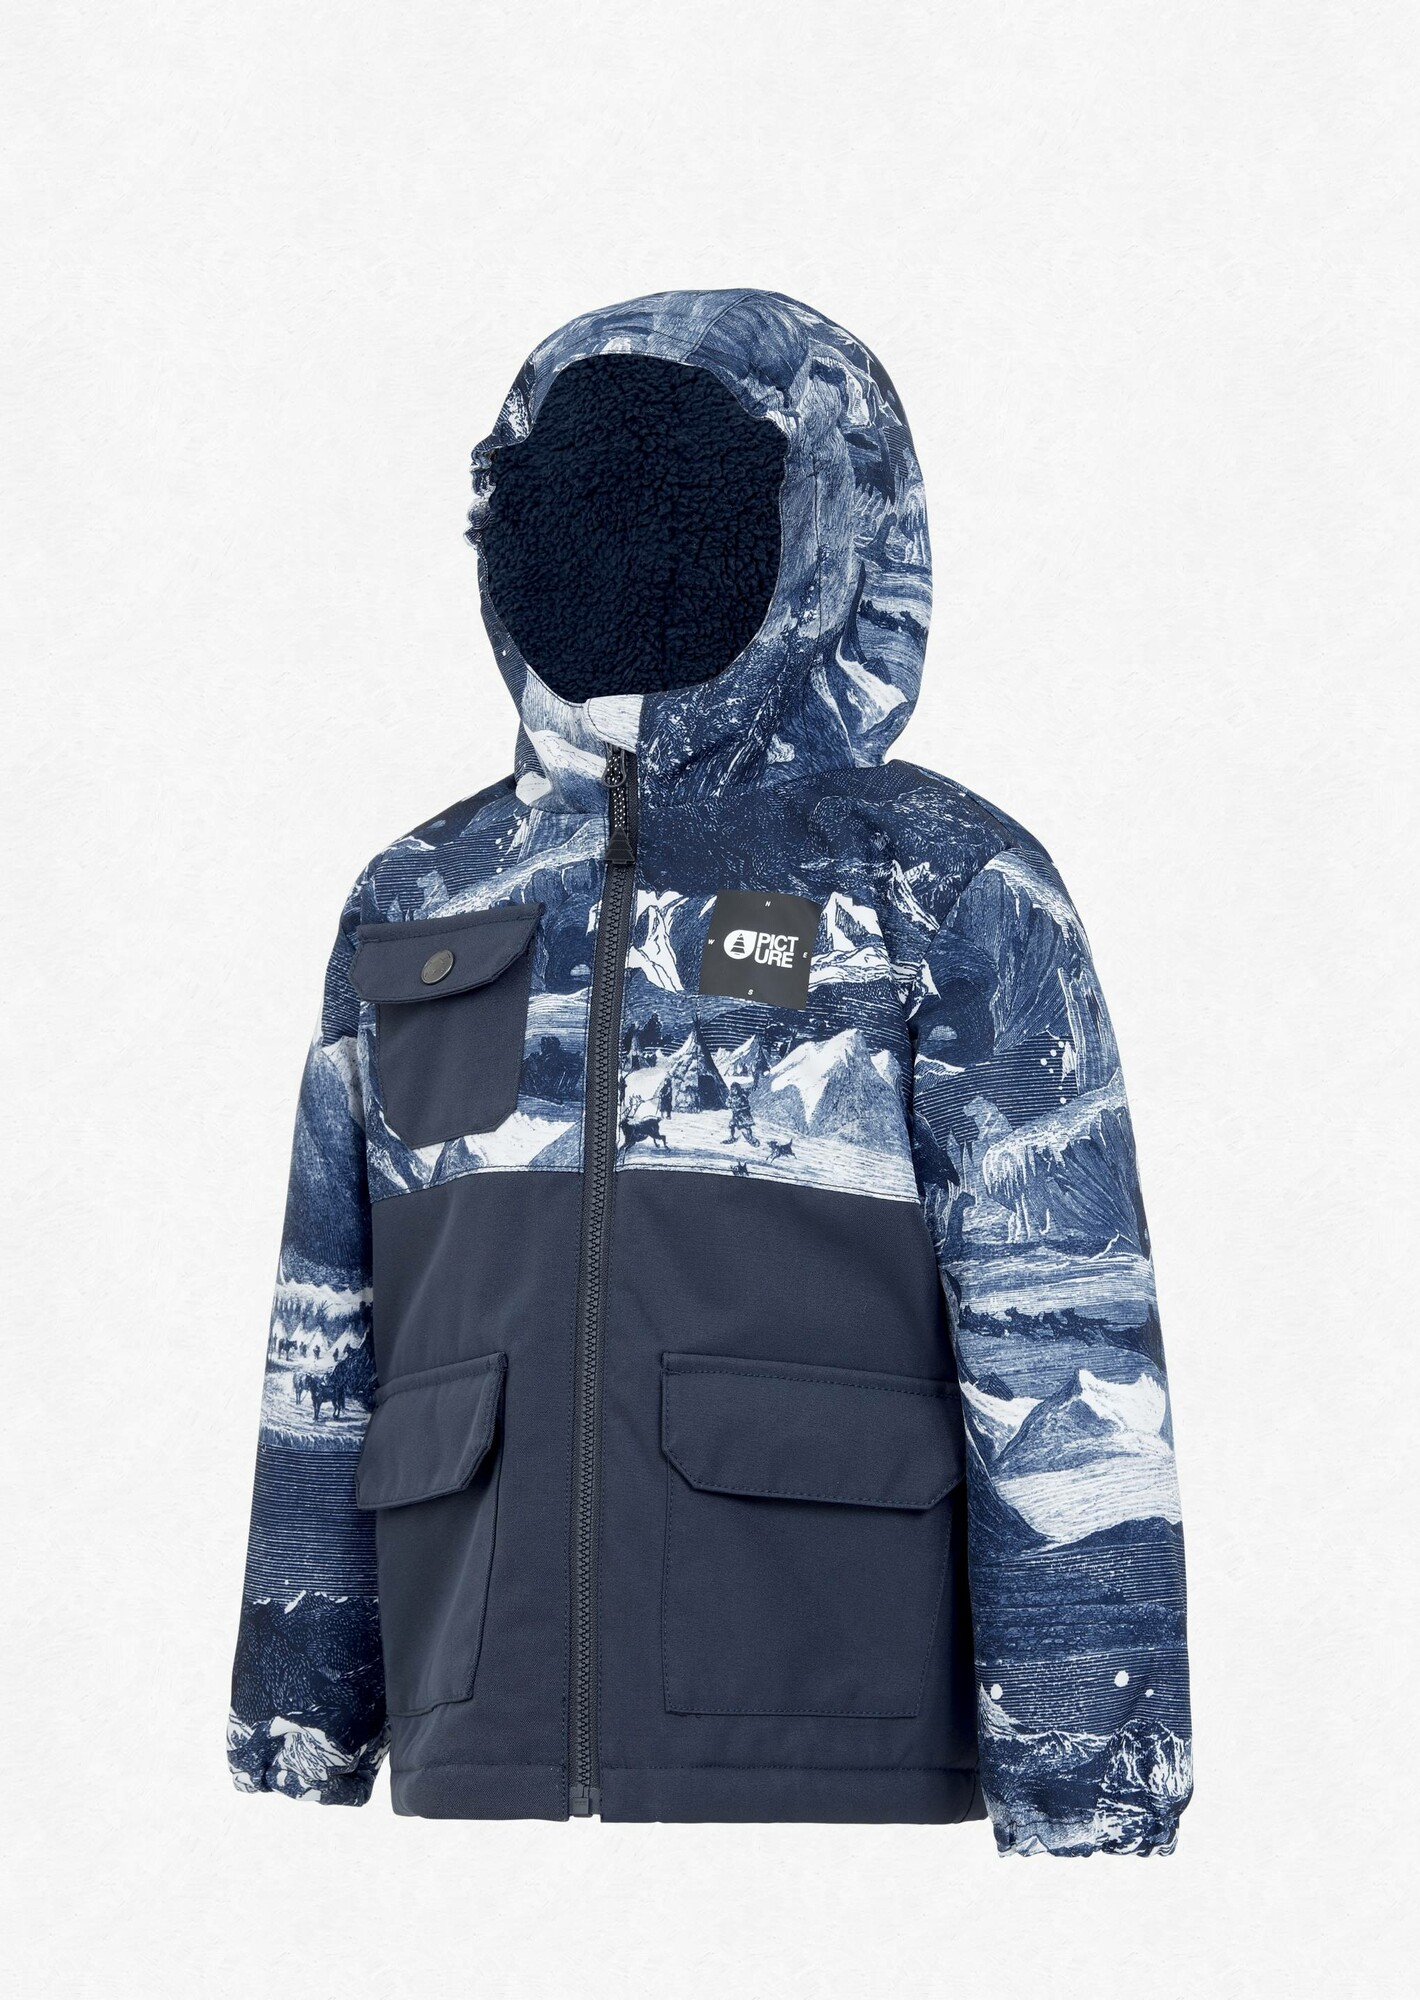 Picture Snowy Jacket 2021